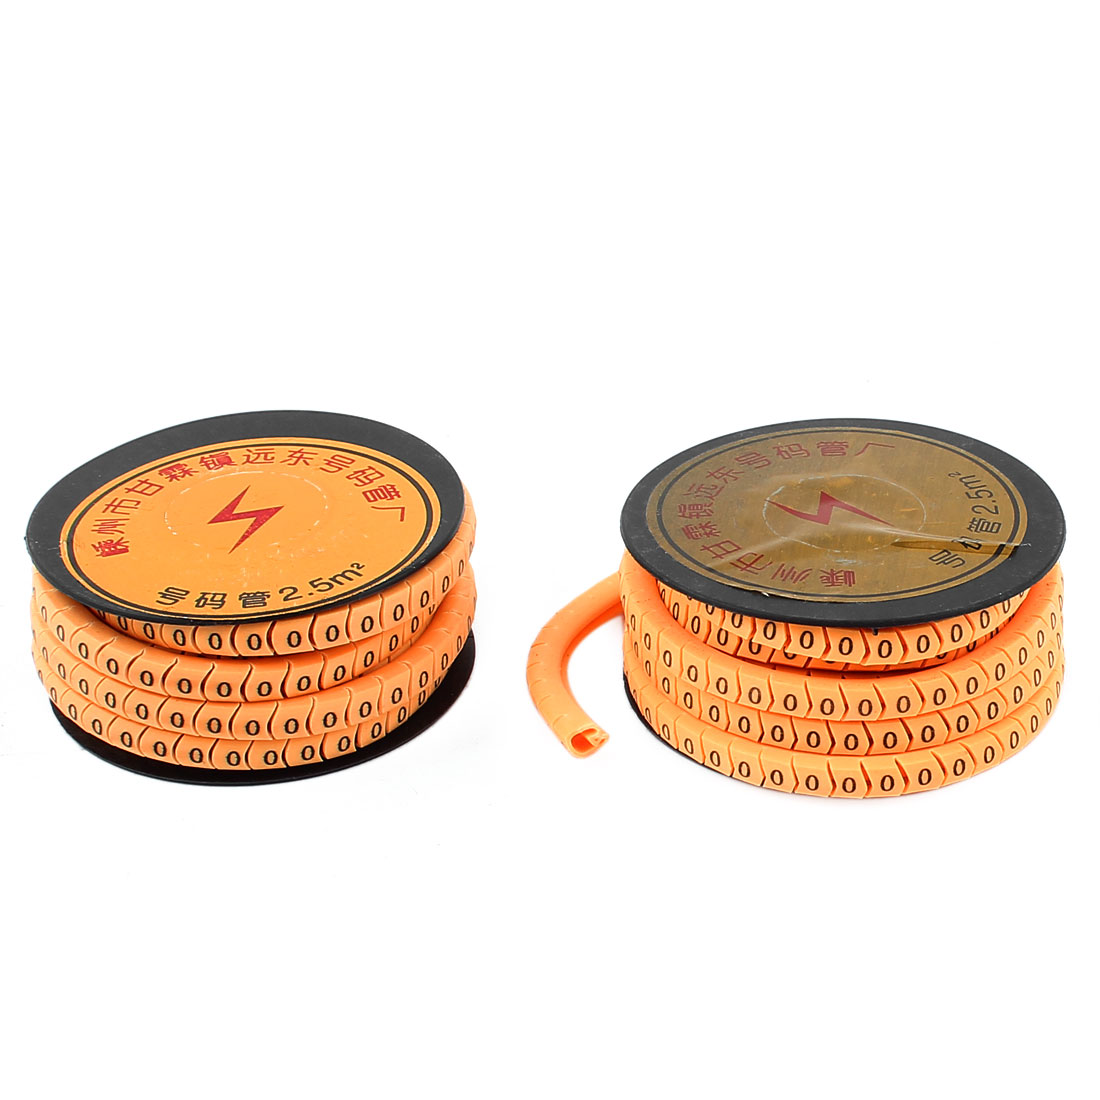 2pcs Flexible Yellow PVC Arabic Numerals 0 Printed Cable Marker Tag Label Reel Roll for 2.5mm2 Wire